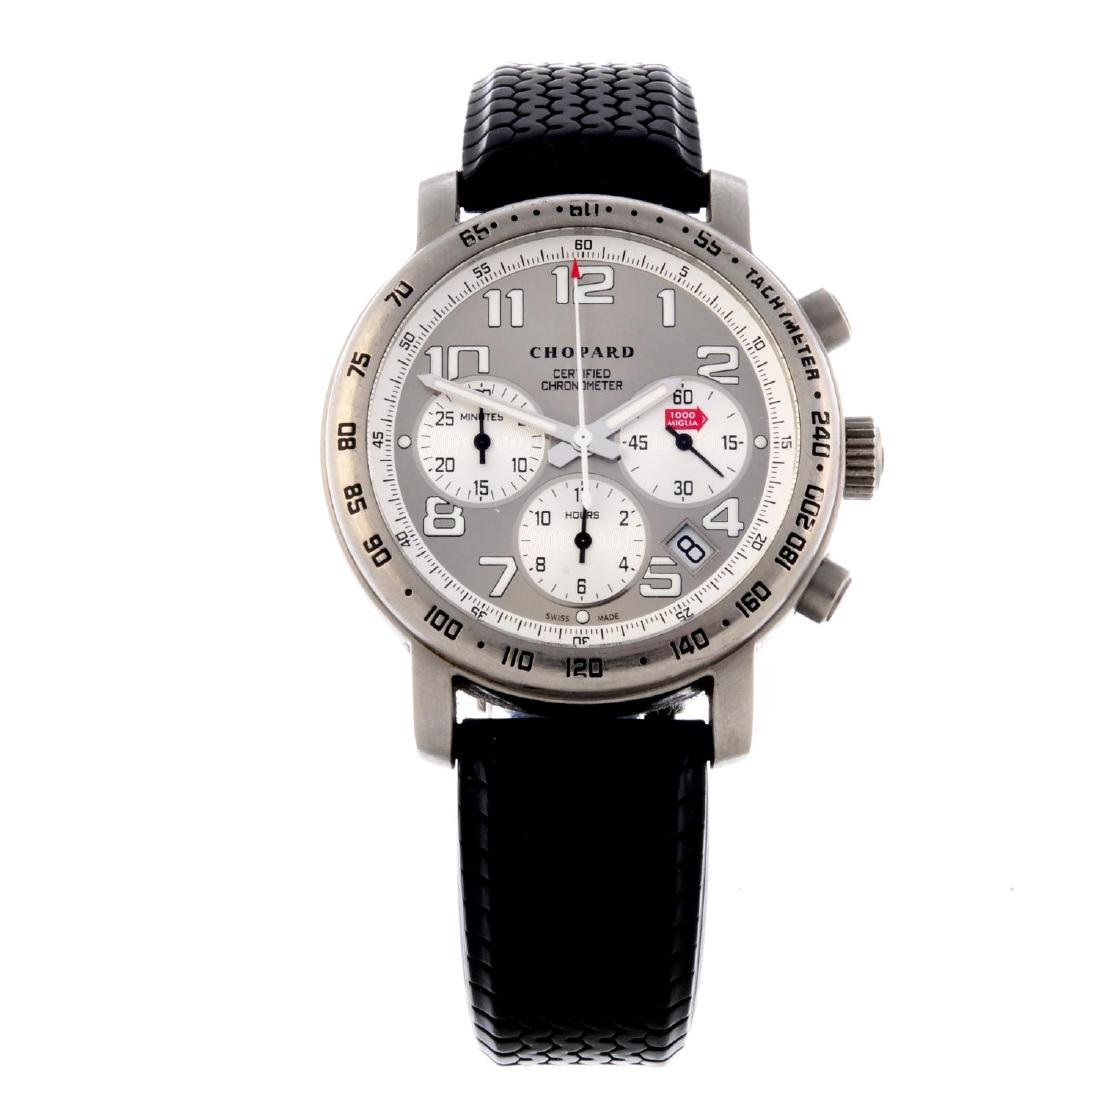 CHOPARD - a limited edition gentleman's Mille Miglia